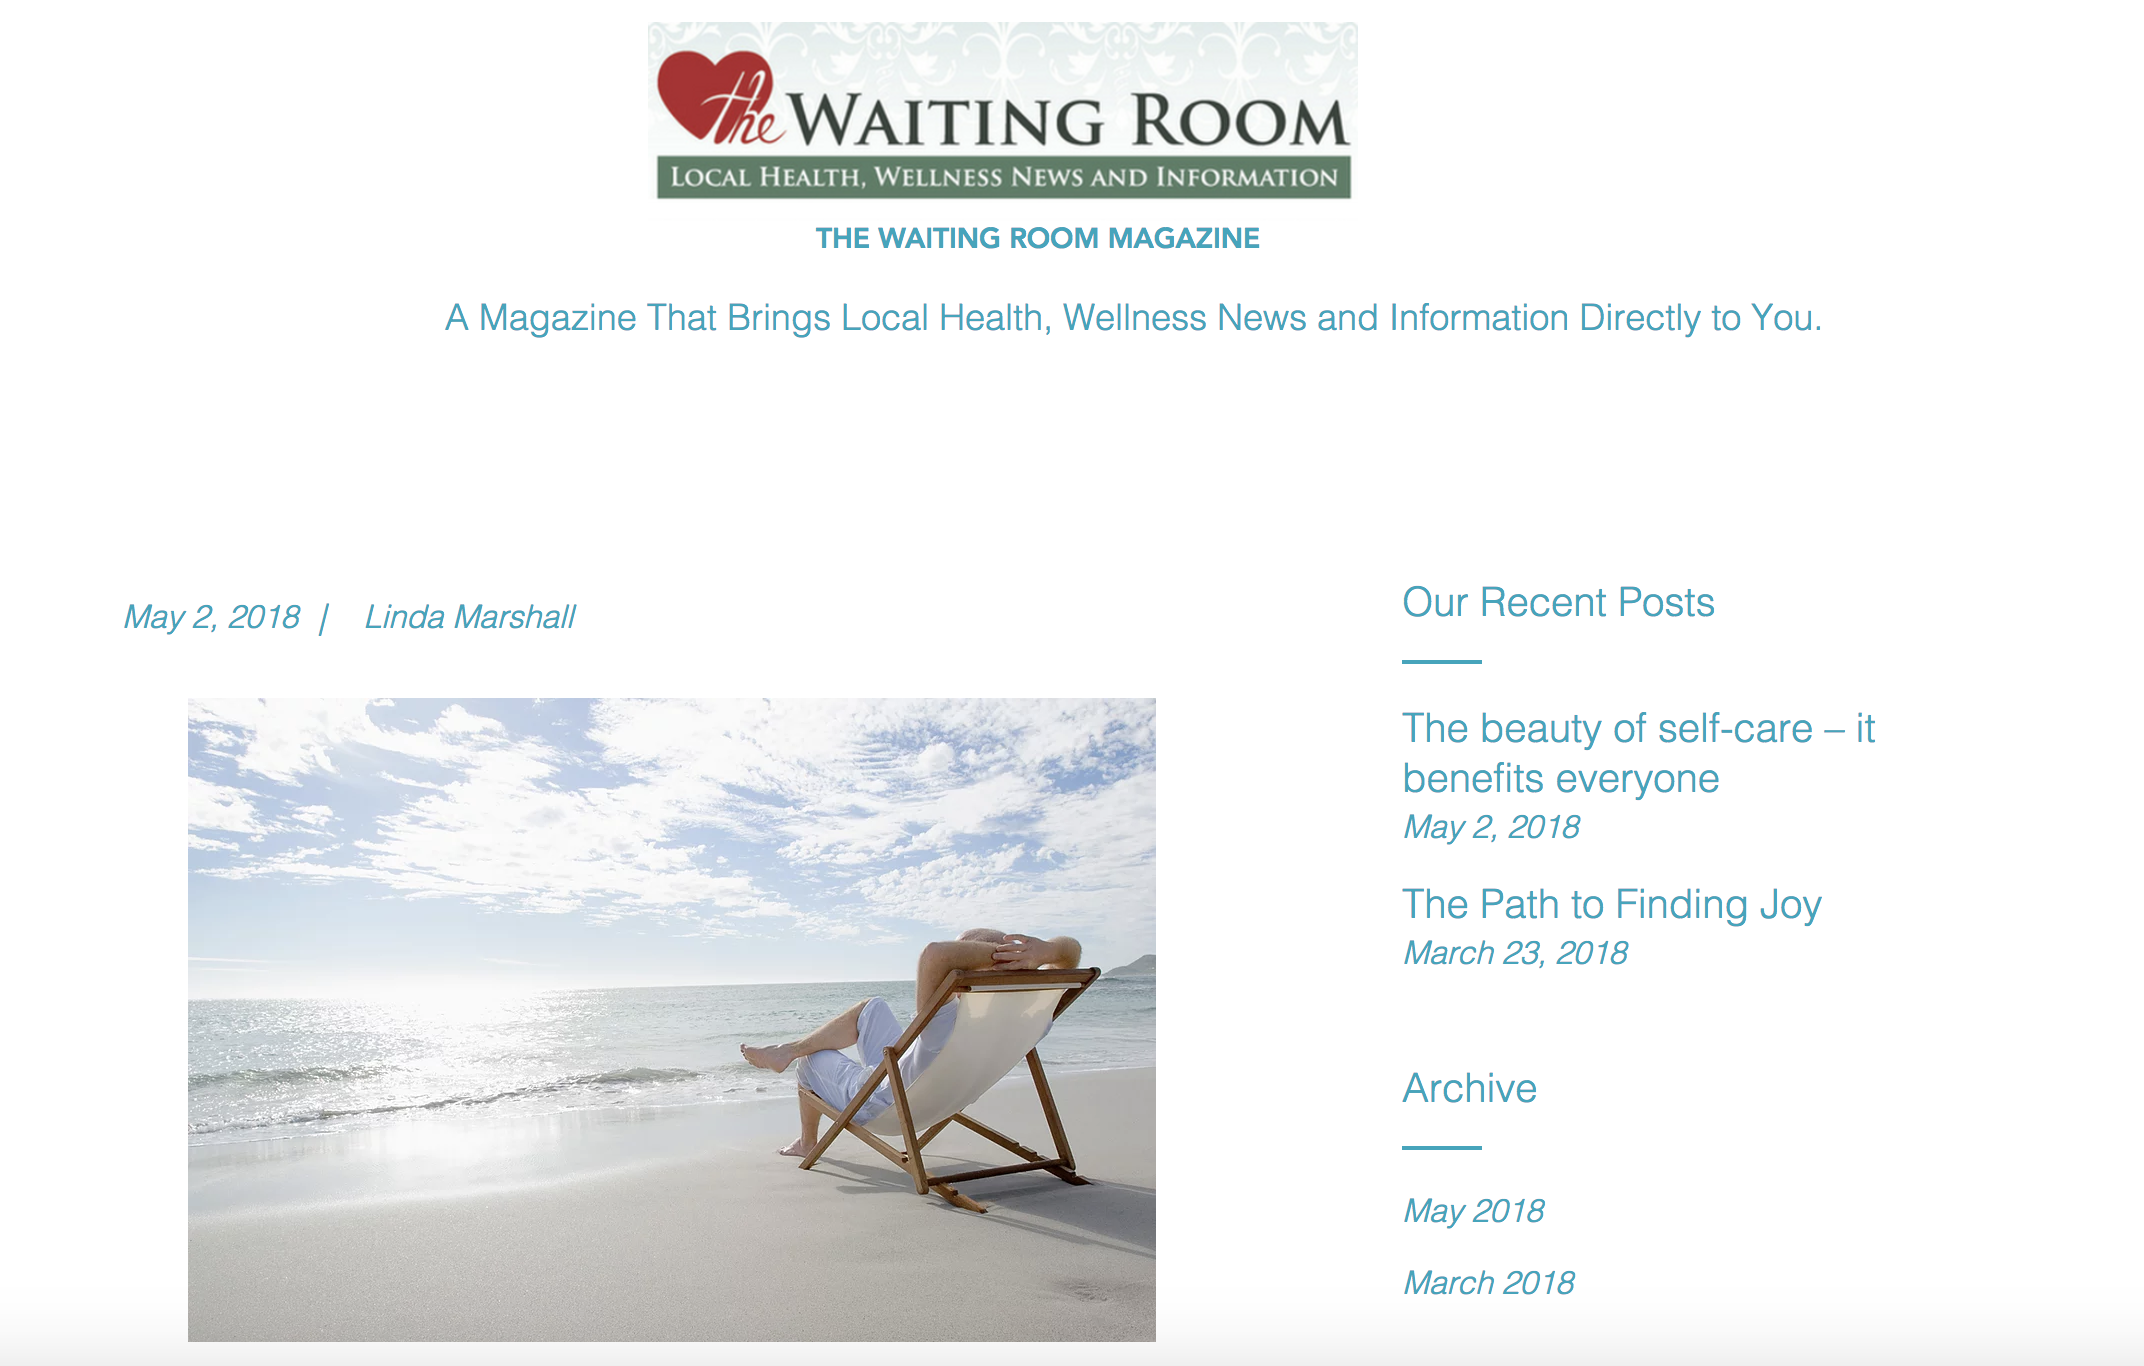 The Beauty of self-care - it benefits everyone, published in The Waiting Room